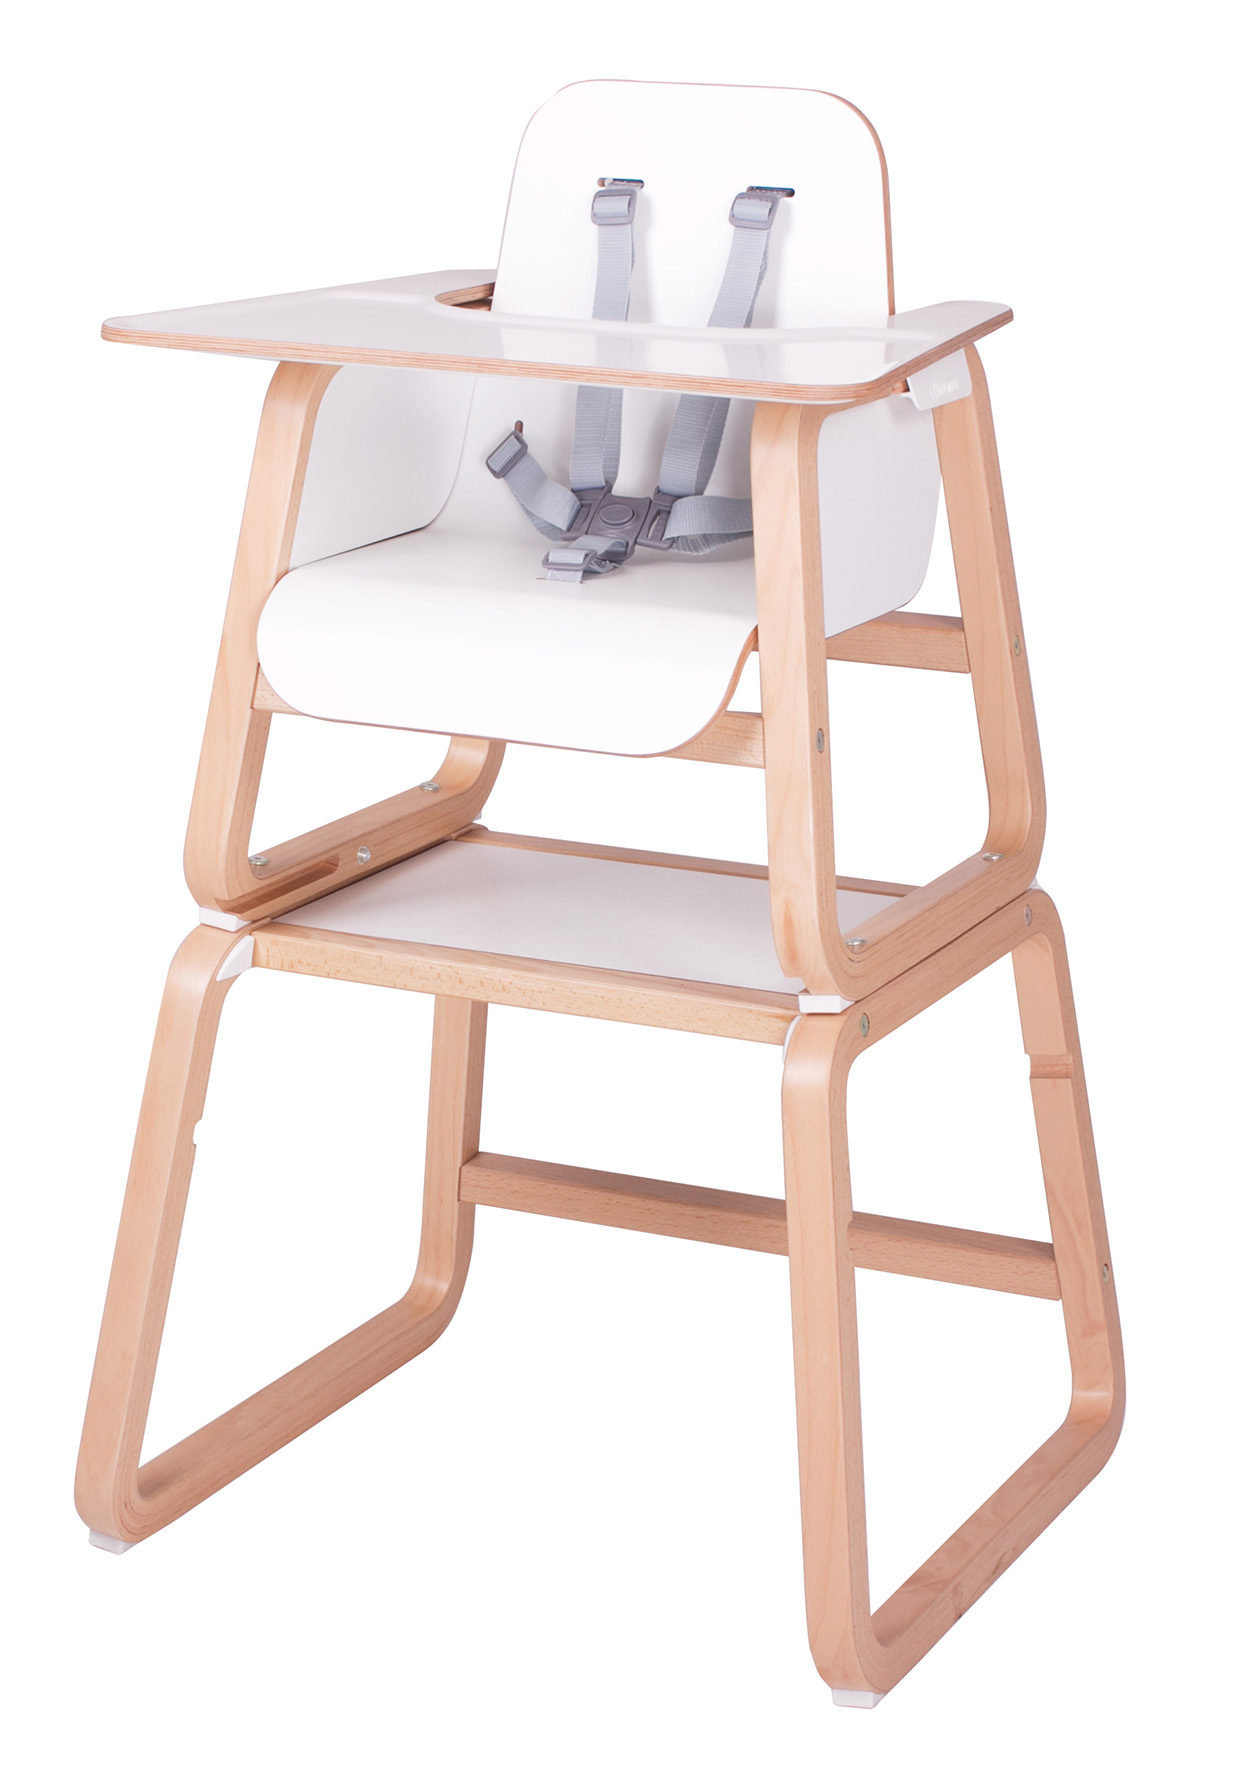 wooden baby high chairs uk kidkraft heart table and chair set knuma connect highchair 4 in 1 from 6